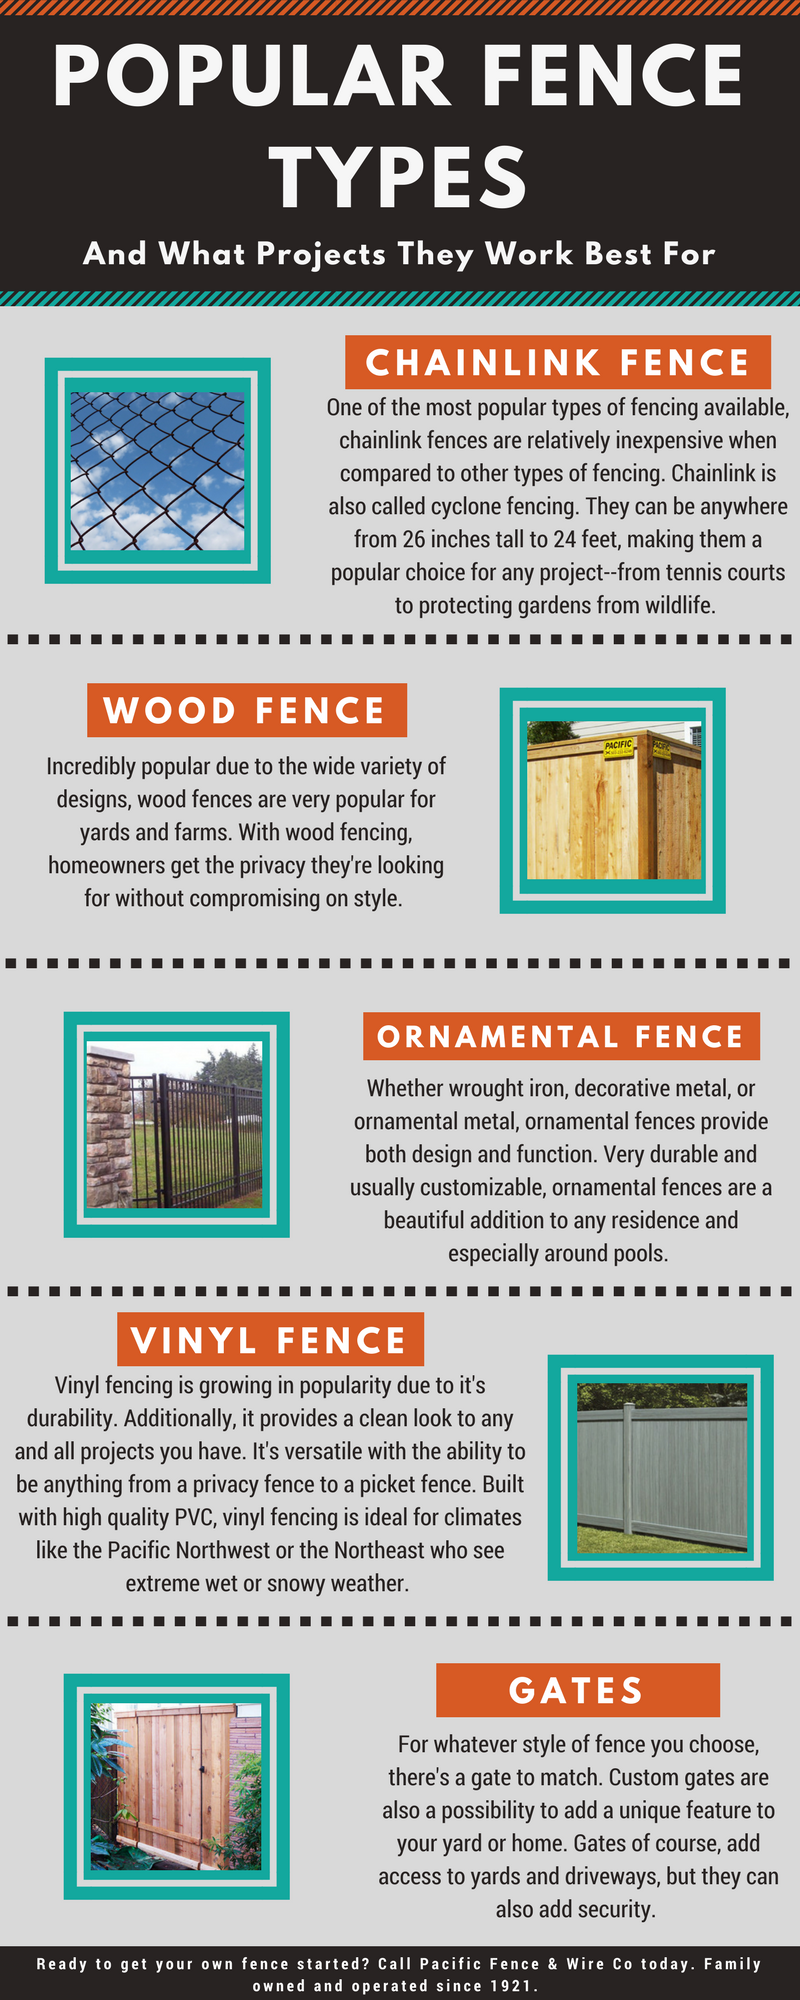 Popular Fences for the Pacific Northwest